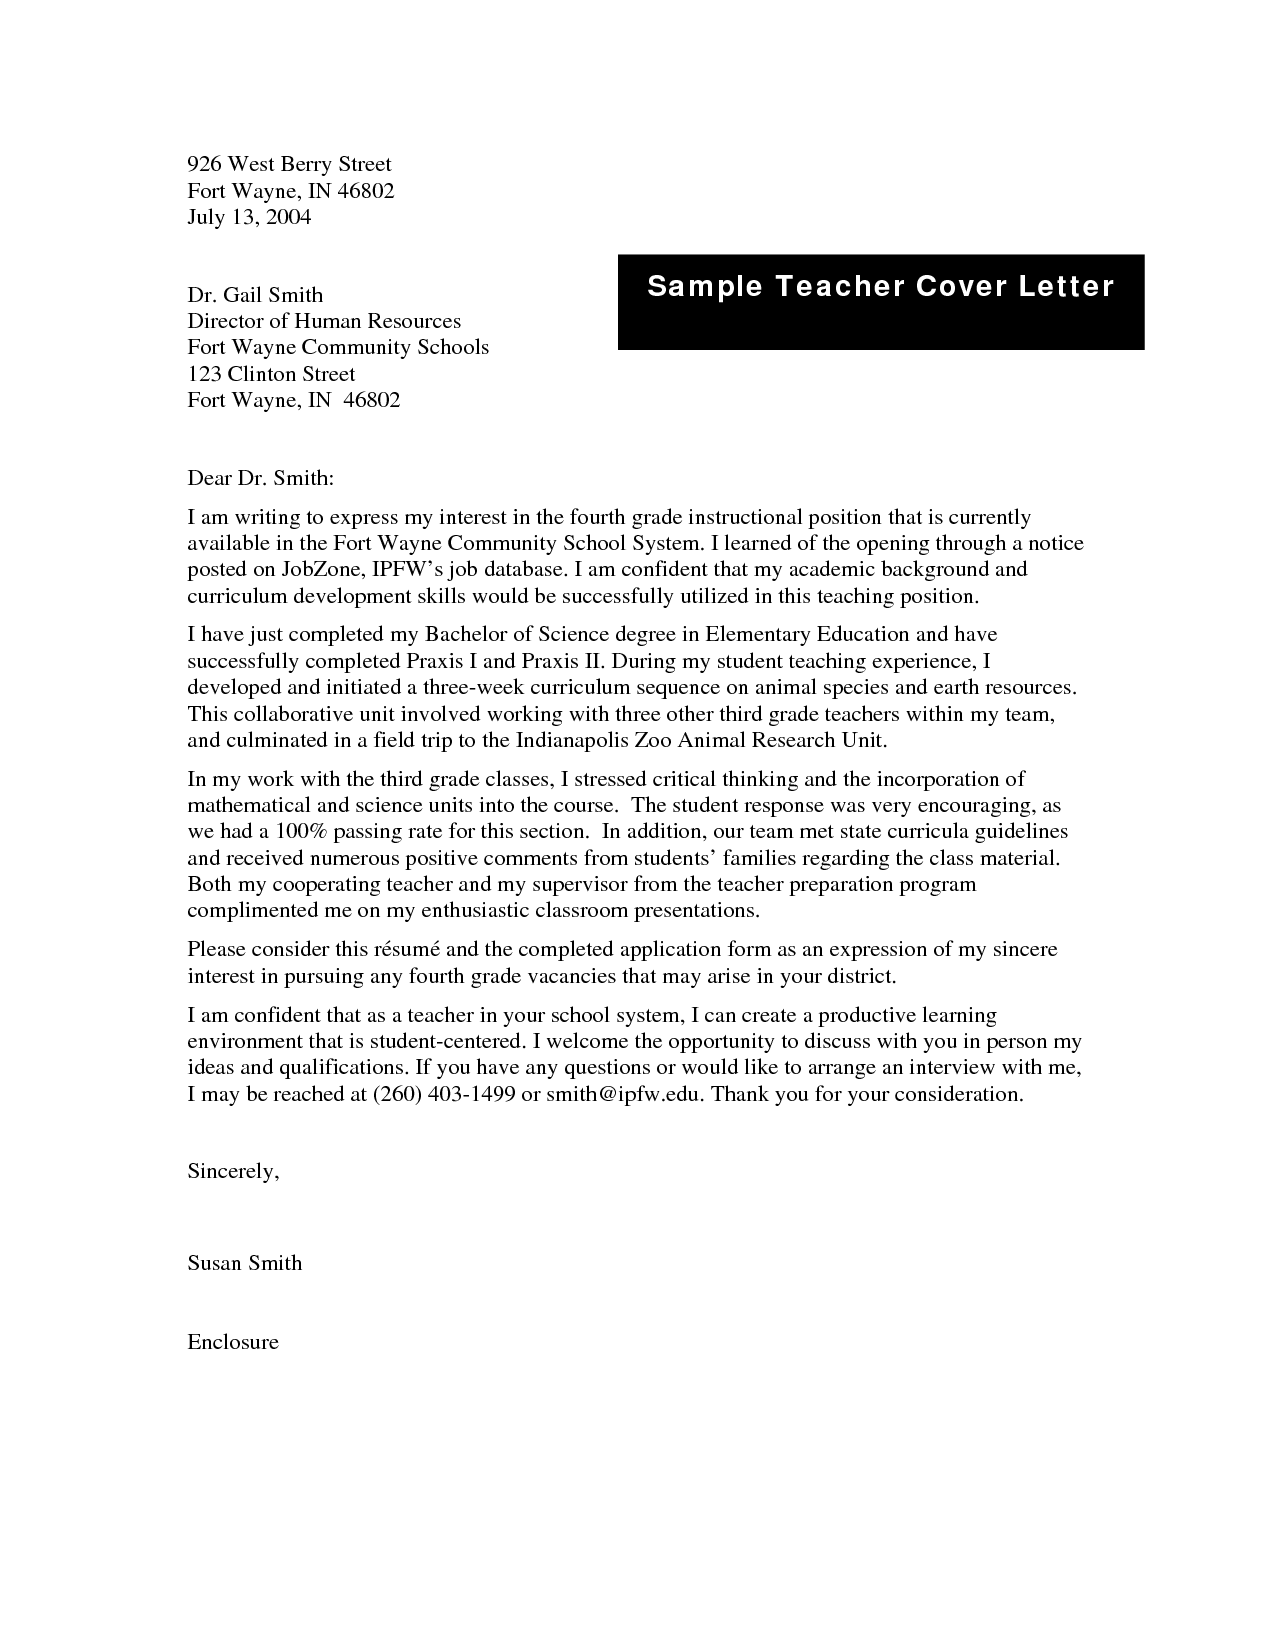 sample cover letters for teaching positions sample cover letter teaching position teaching job cover letter sample high school teacher cover letter